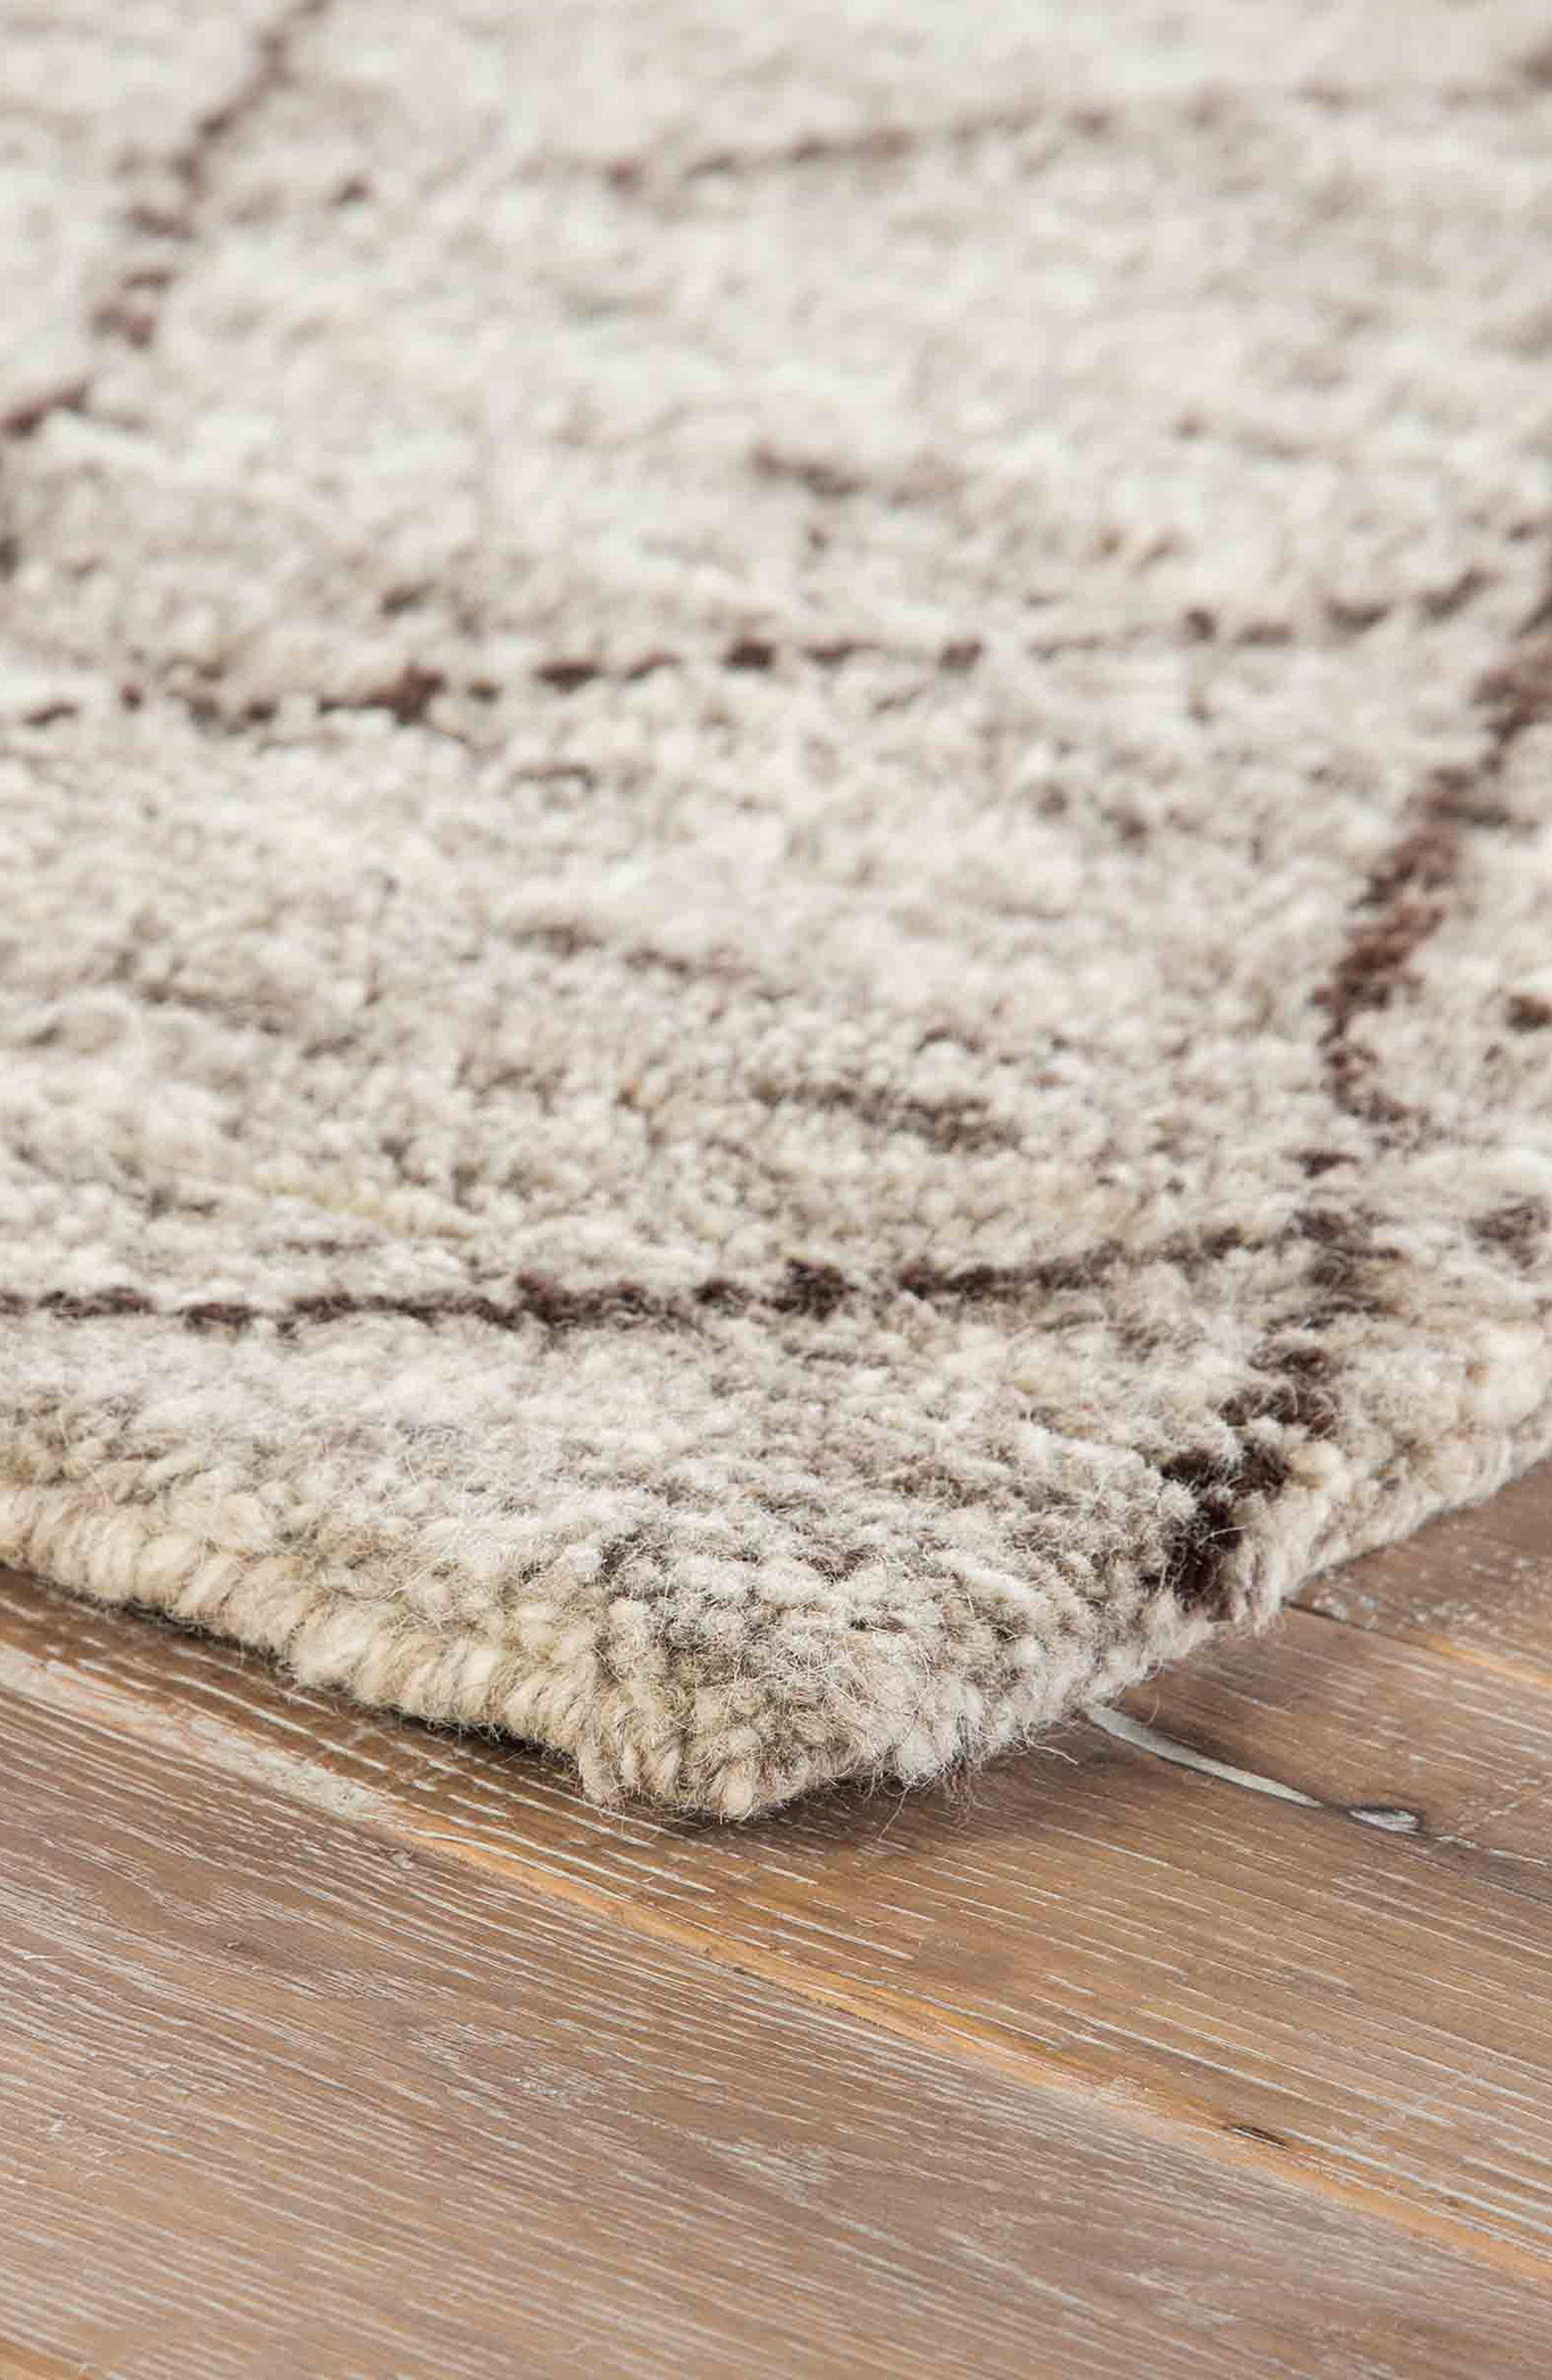 'Zola' Hand Knotted Wool Rug,                             Alternate thumbnail 5, color,                             NATURAL/ BROWN